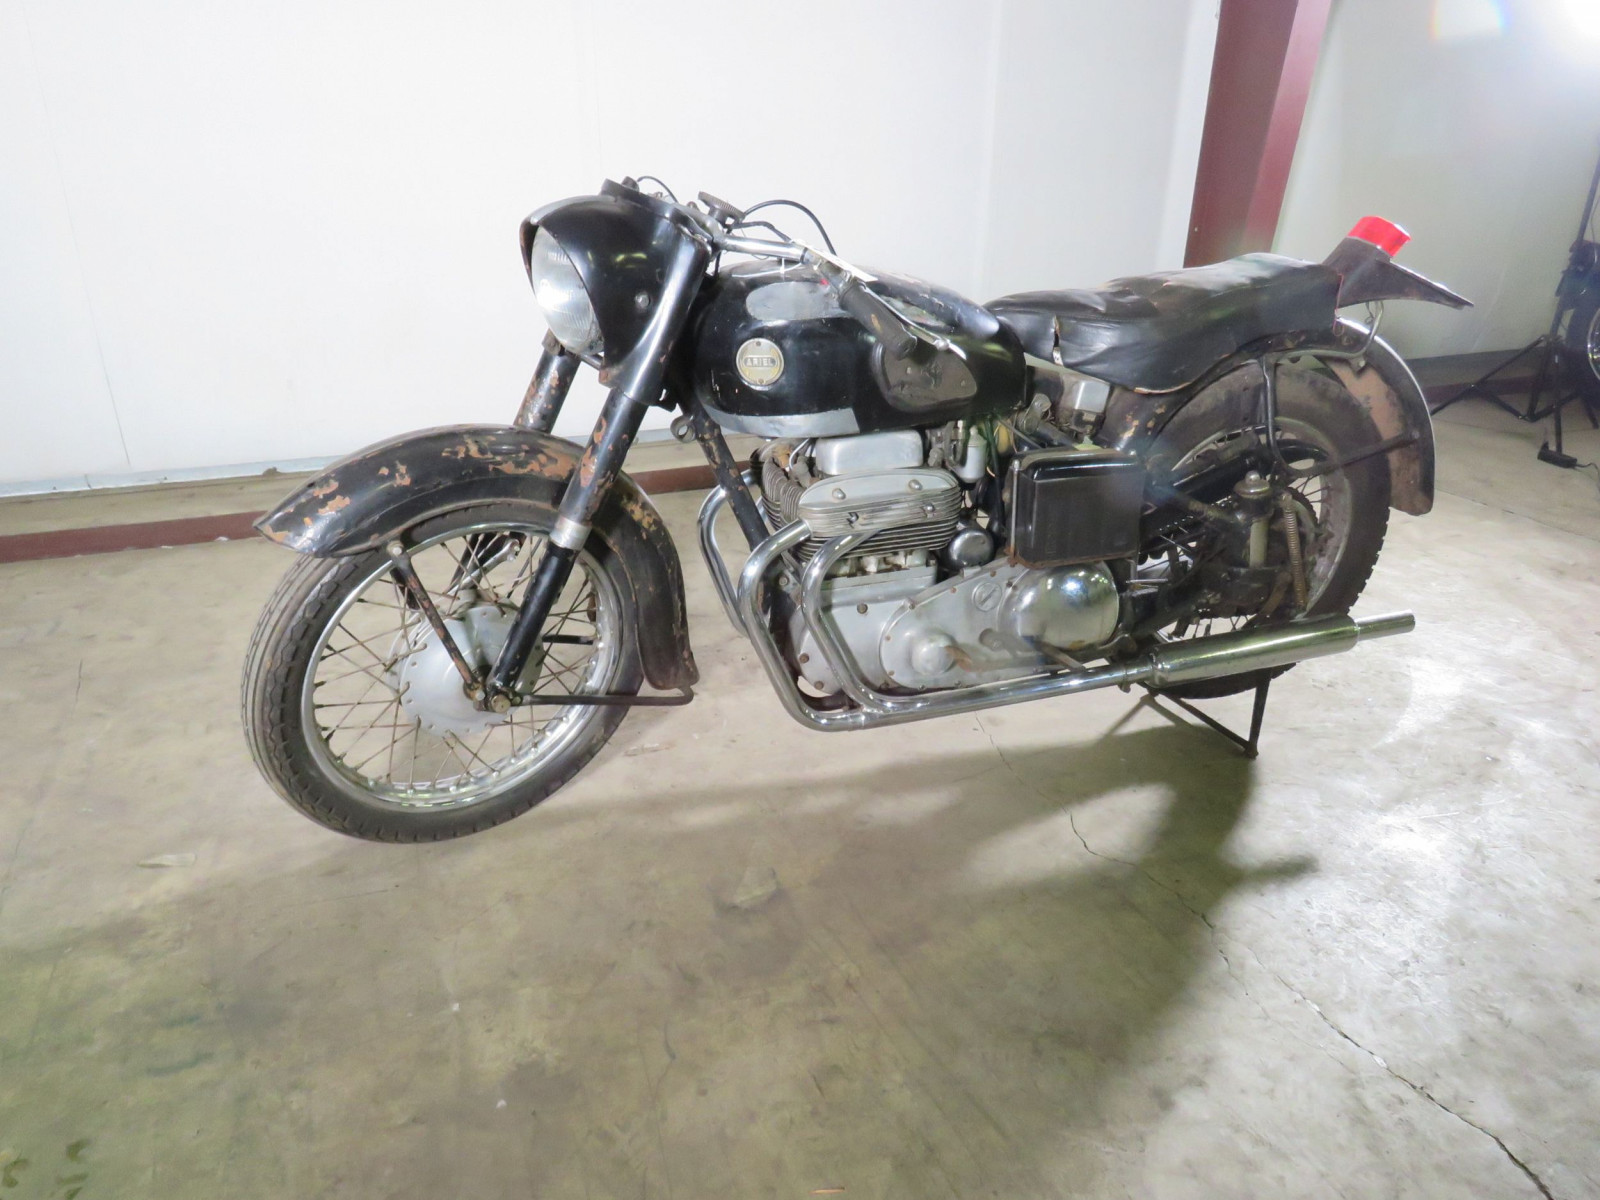 1957 Ariel Square Four Motorcycle - Image 13